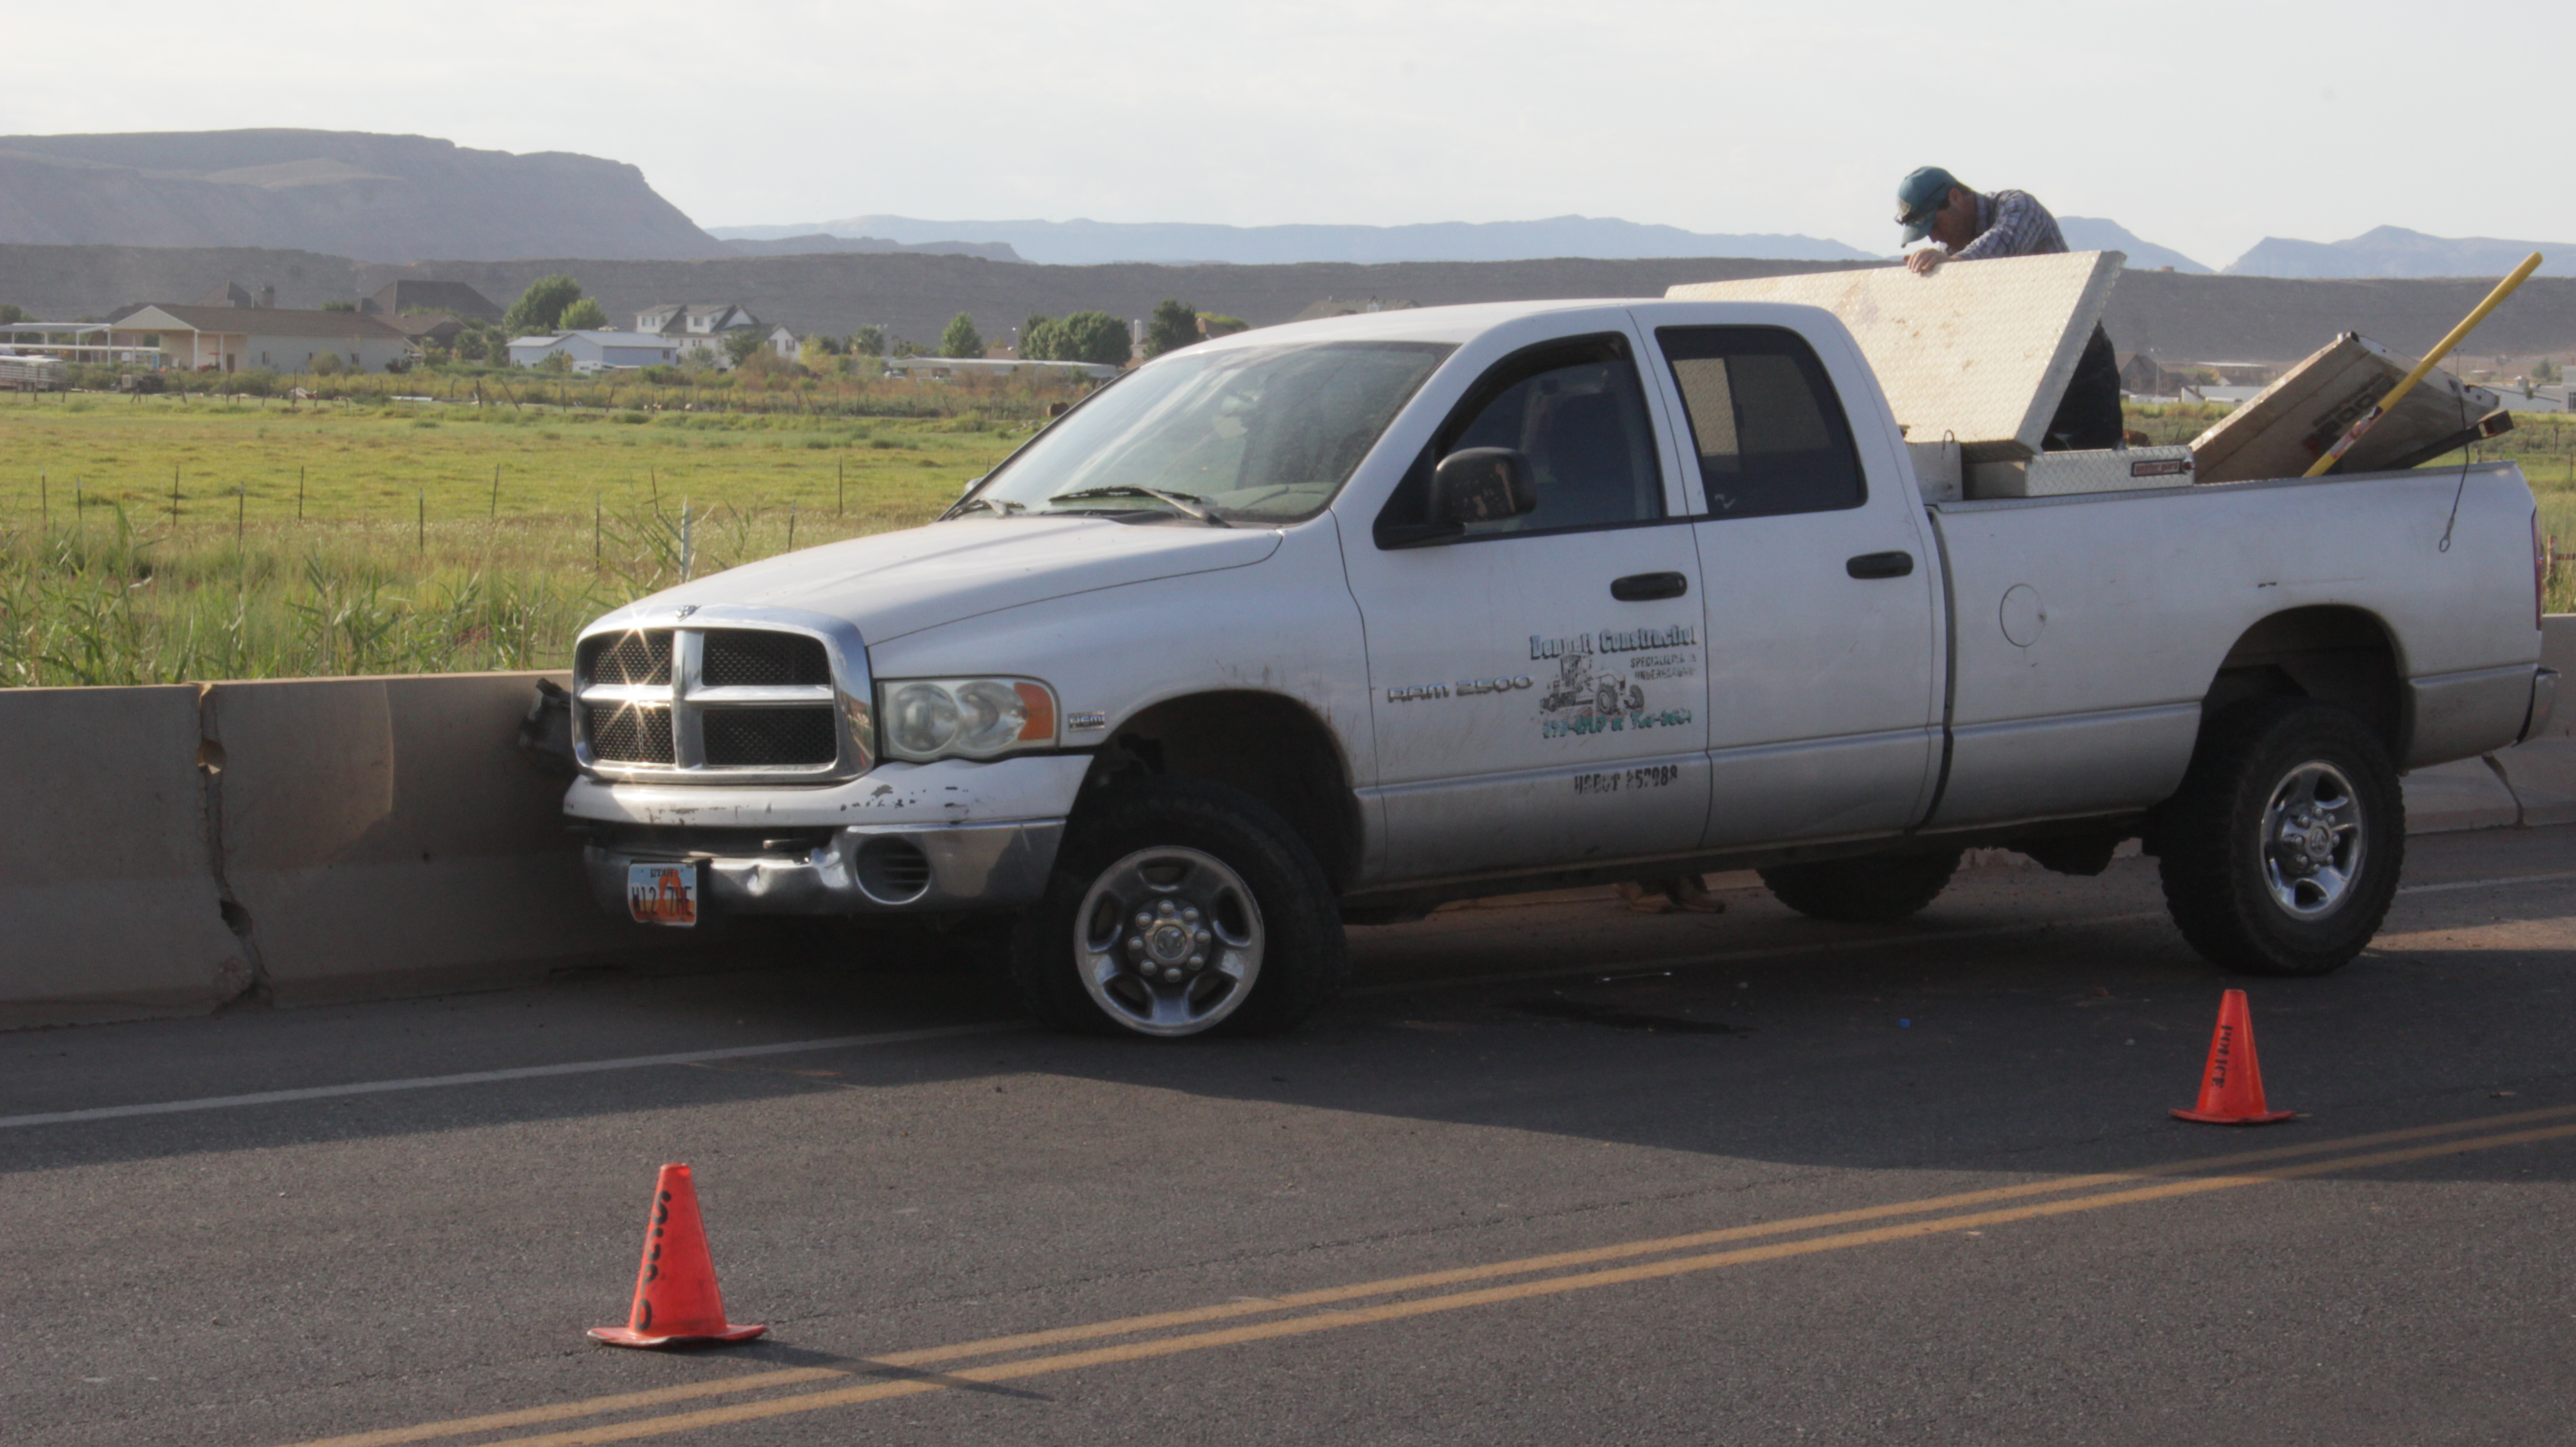 A driver attempting to reach for his medication slammed into a concrete barrier Thursday morning, St. George, Utah, Aug 18, 2016 | Photo by Don Gilman, St. George News